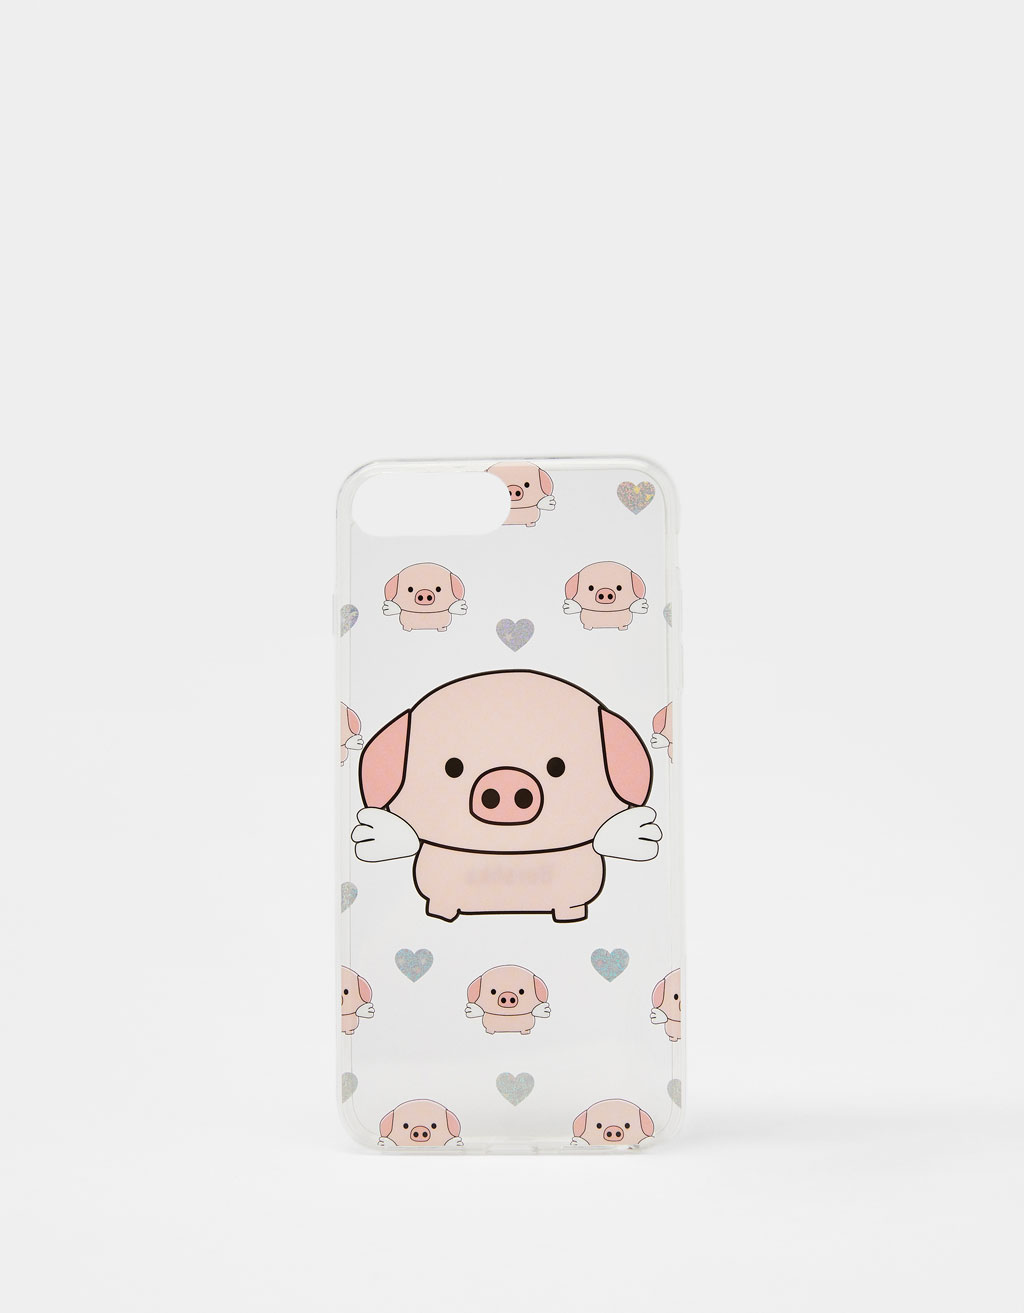 Carcasa Little Pig iPhone 6 plus / 7 plus / 8 plus